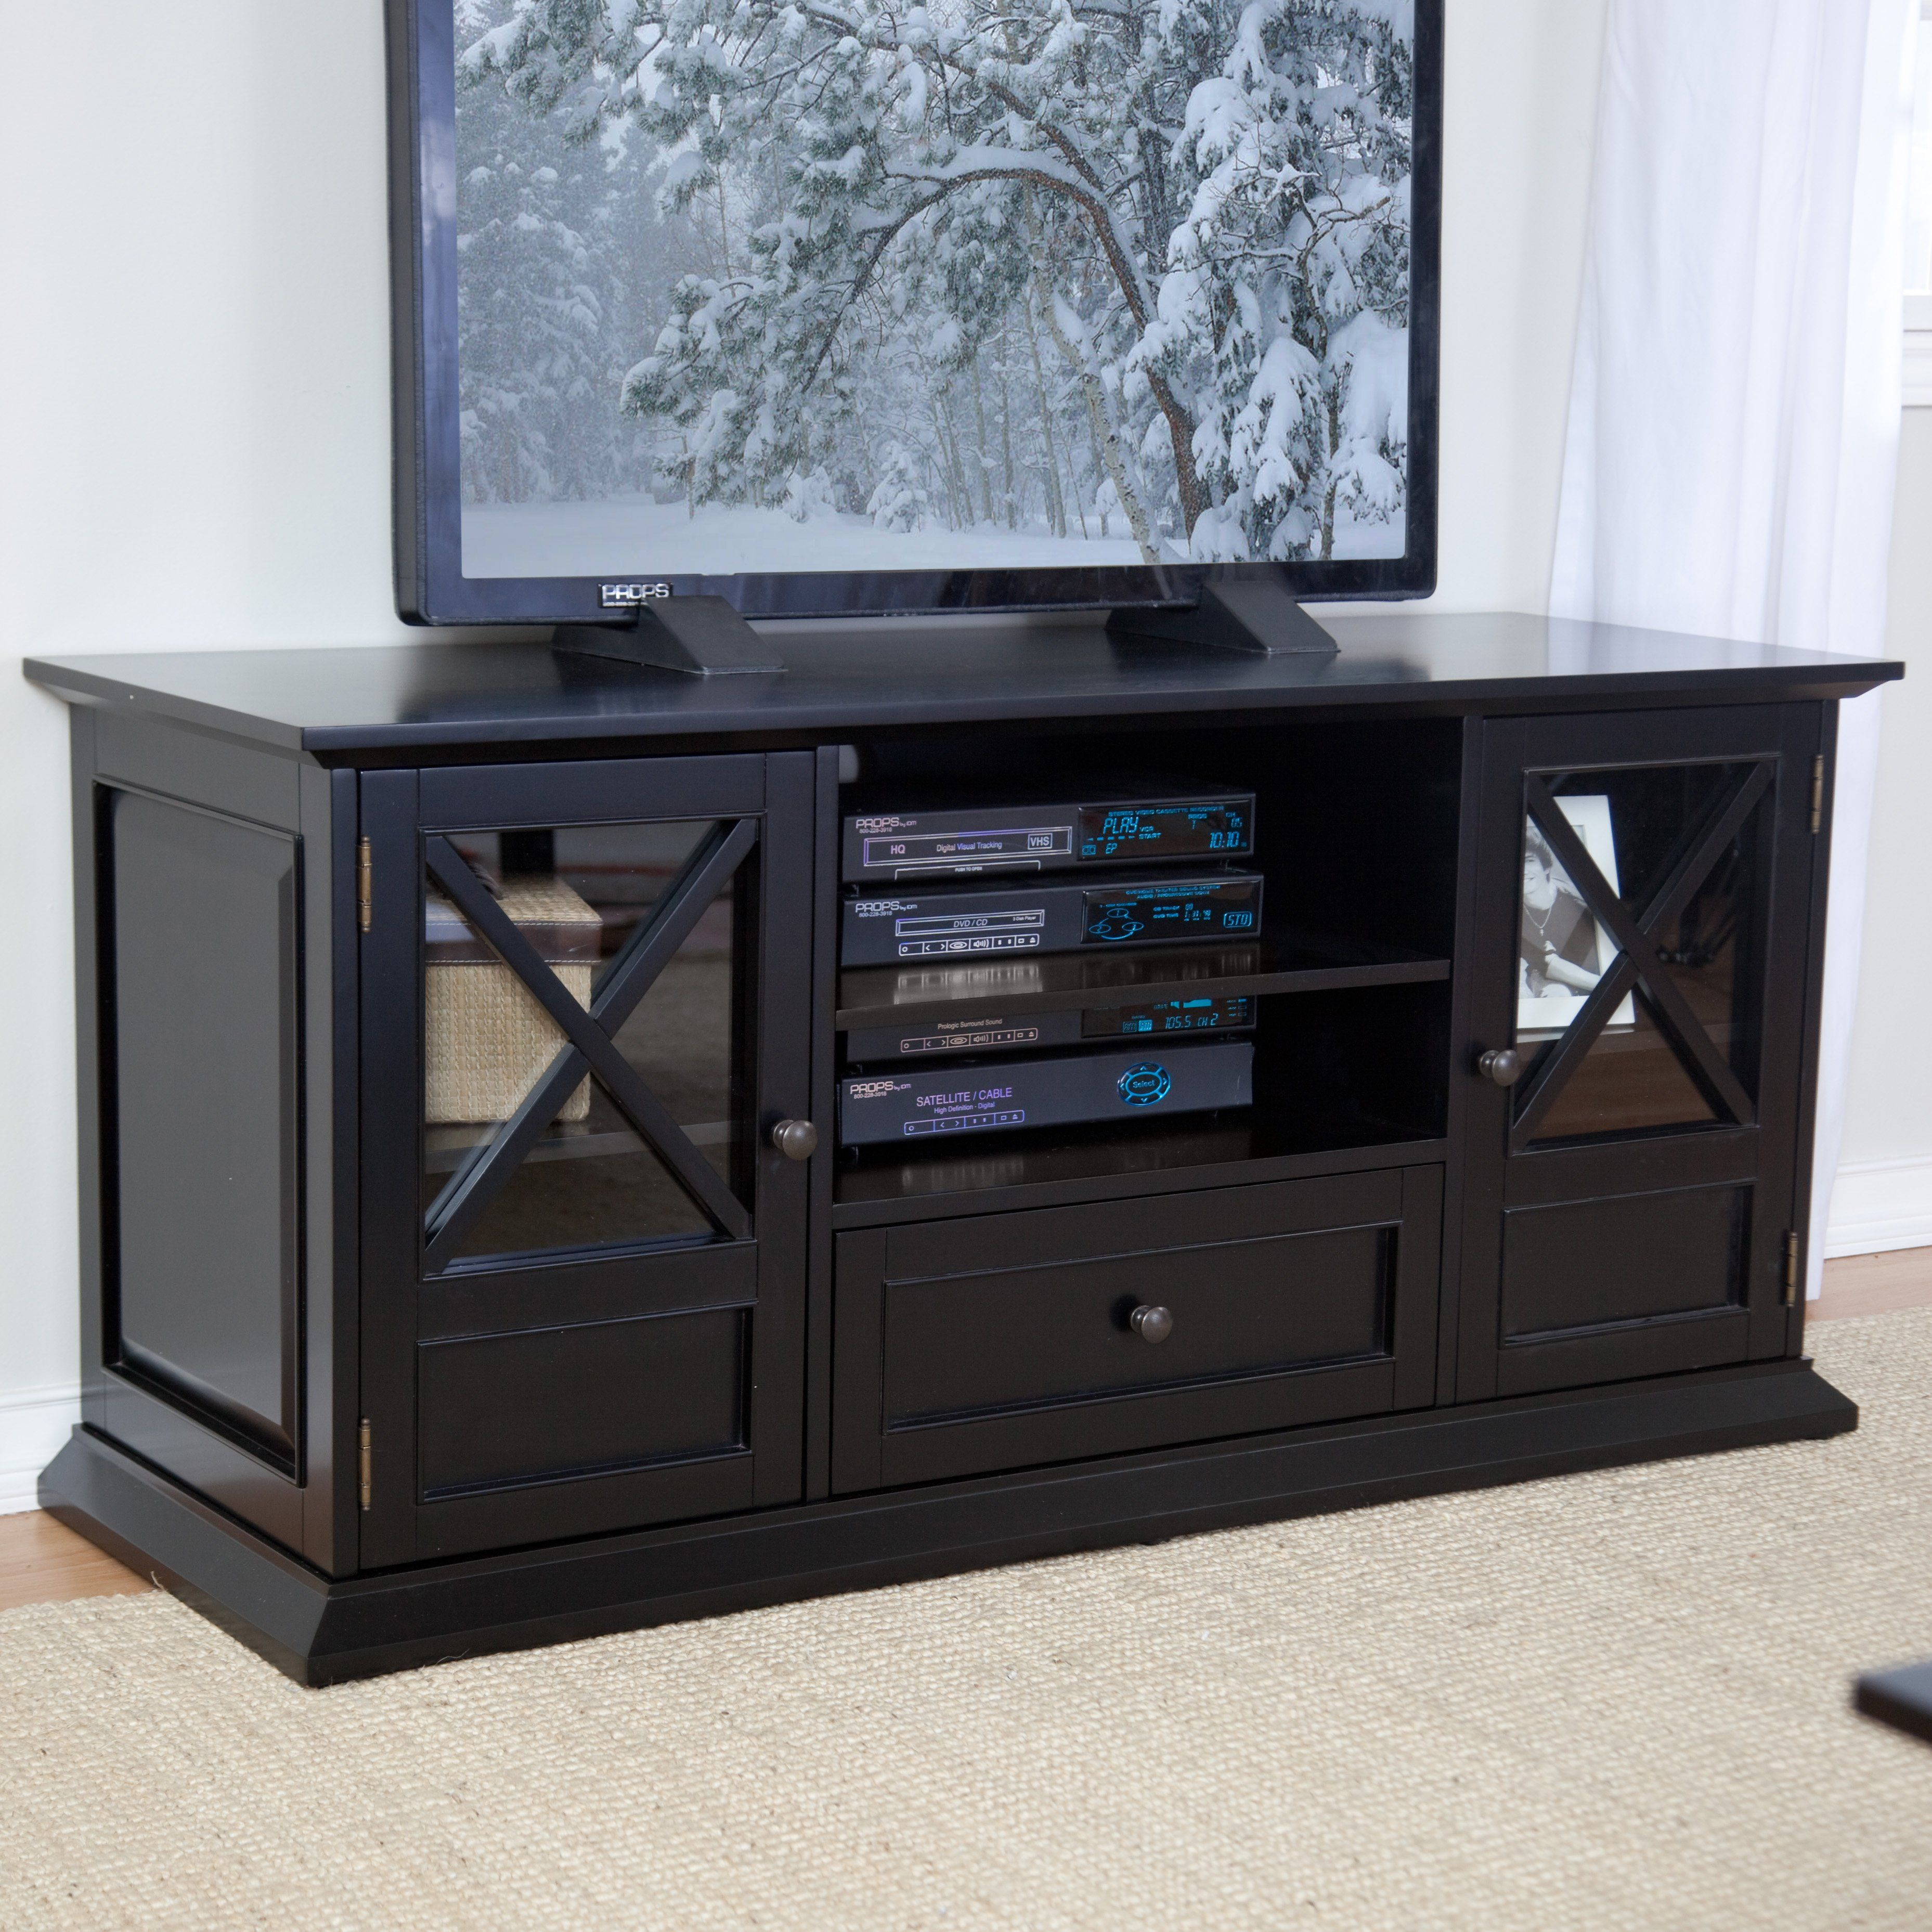 Floor tv stands for 55 inch flat screens - Belham Living Hampton 55 Inch Tv Stand Black Tired Of Mass Marketed Furniture